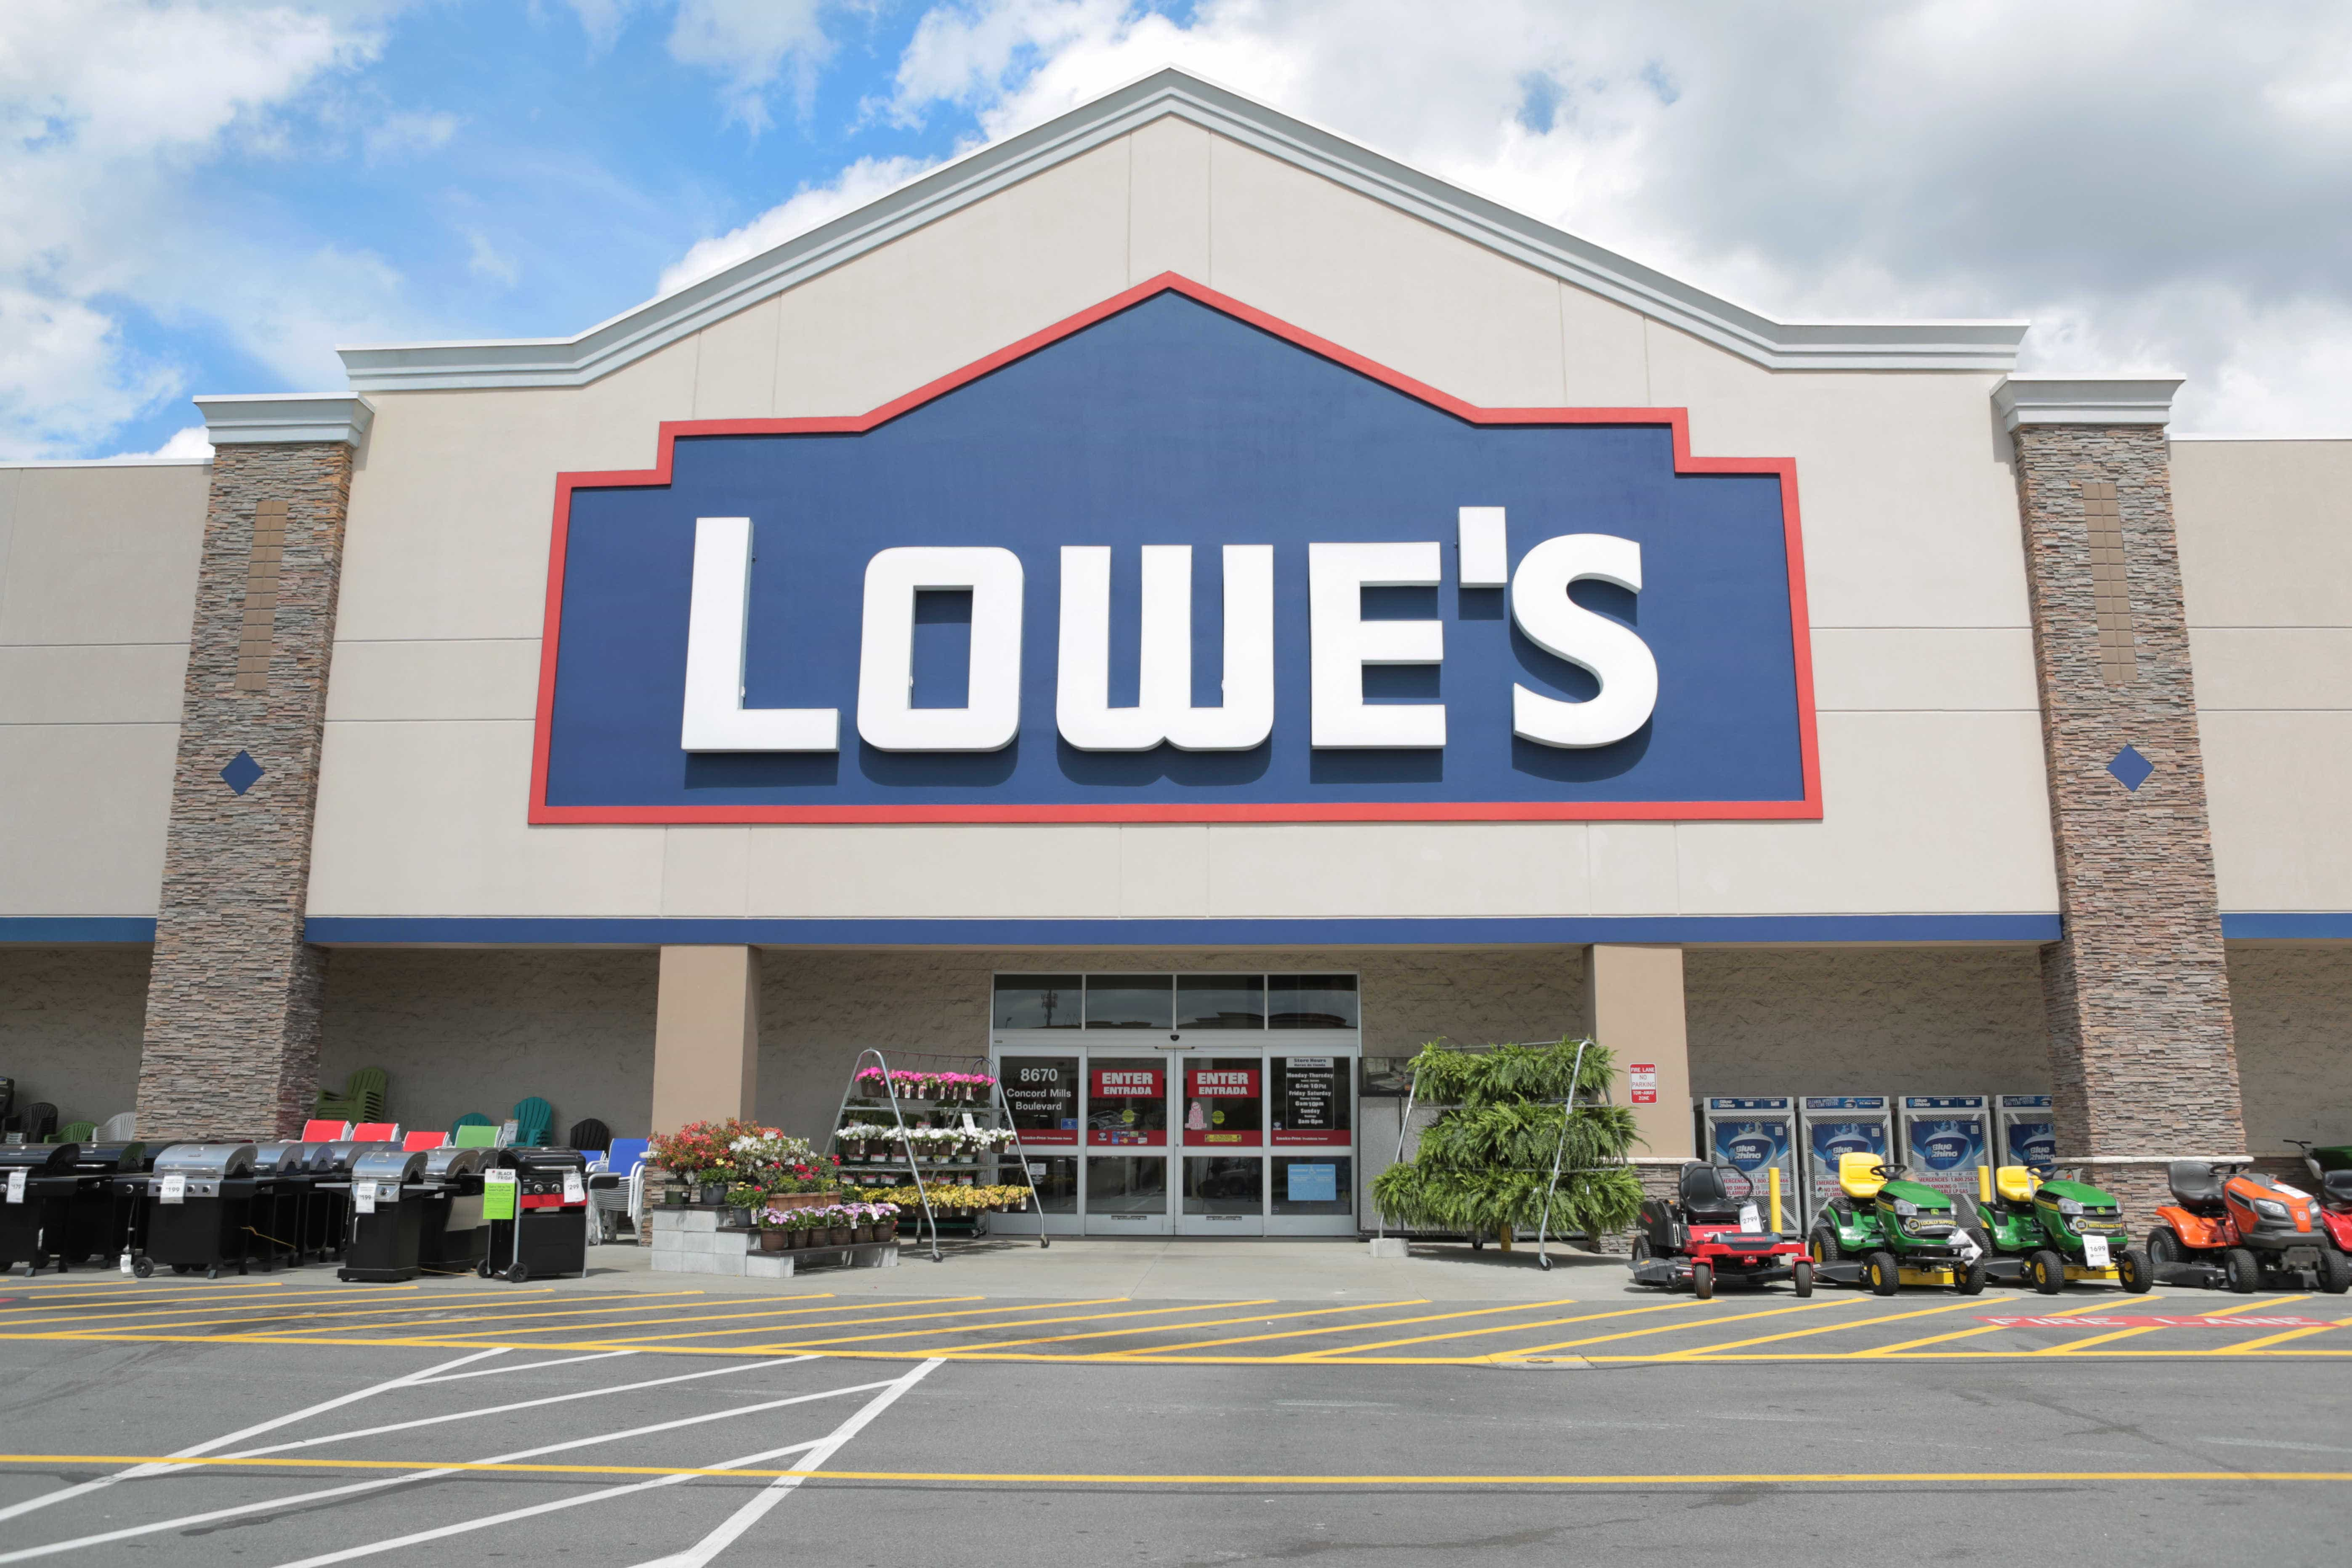 Lowe's builds board quickly after activist interest